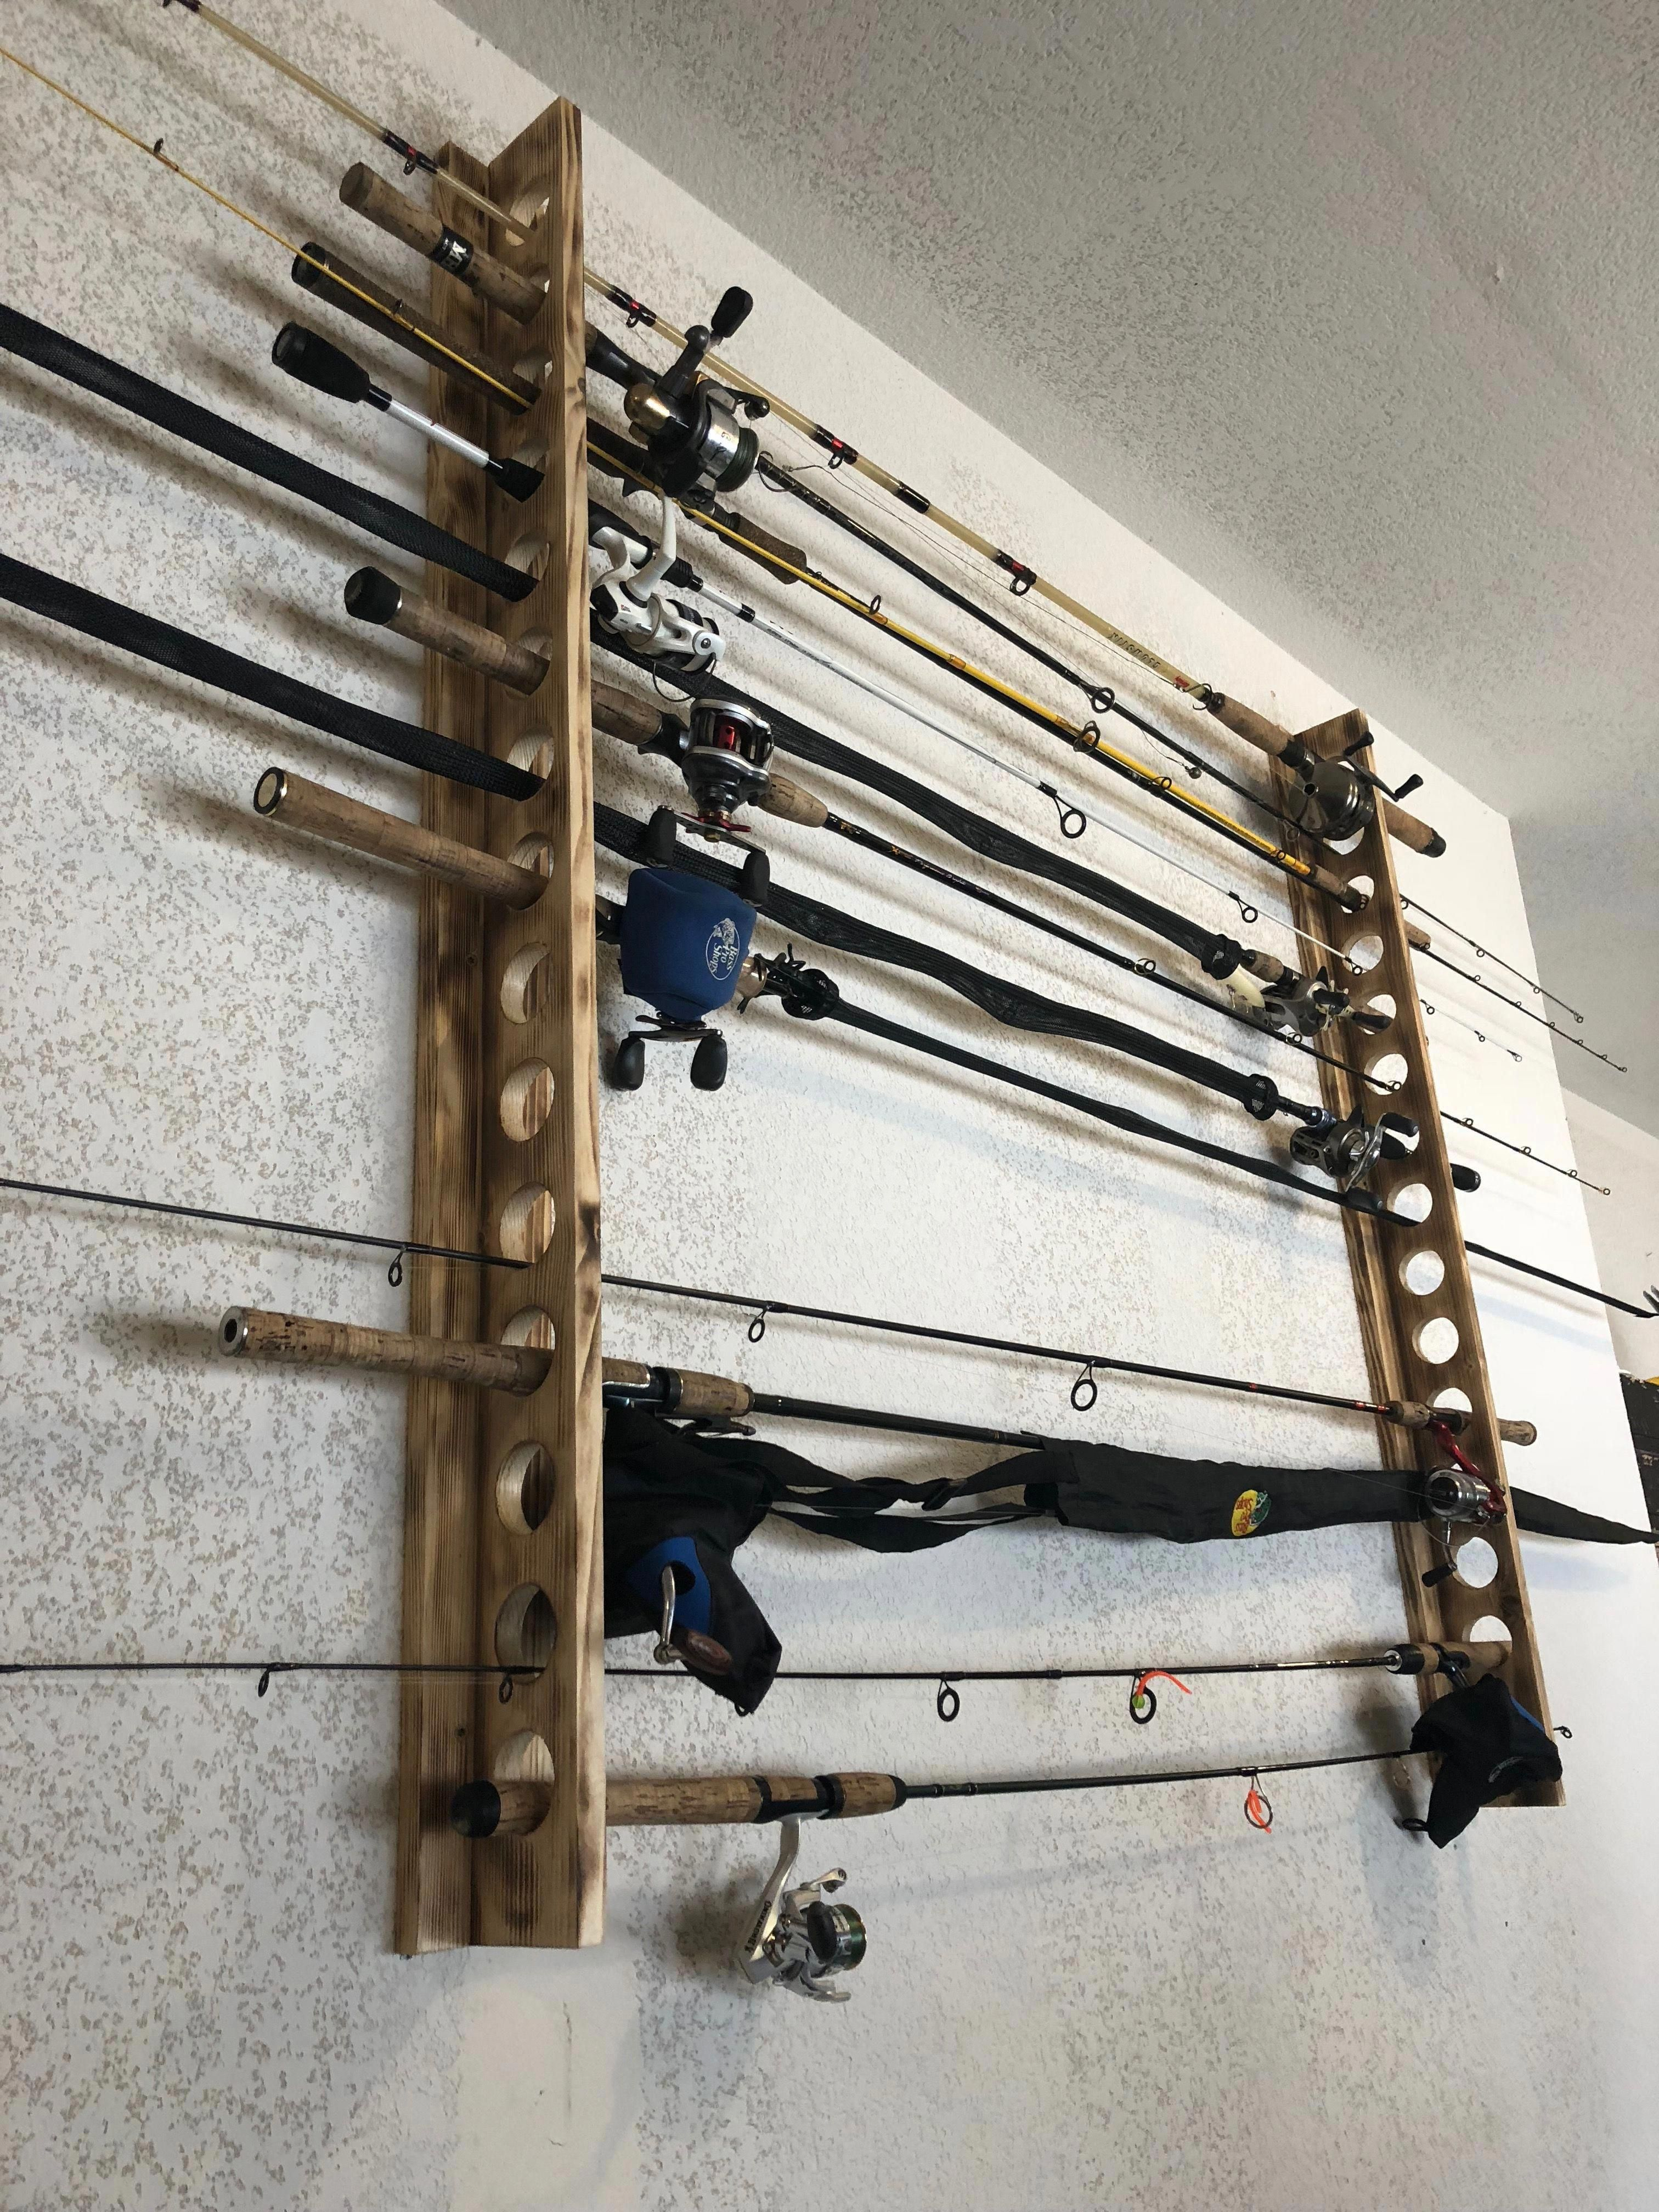 Fishing Rod Holder 1 Hr To Complete Fishingrodstorage Fishing Rod Holder Fishing Rod Storage Fishing Rod Rack